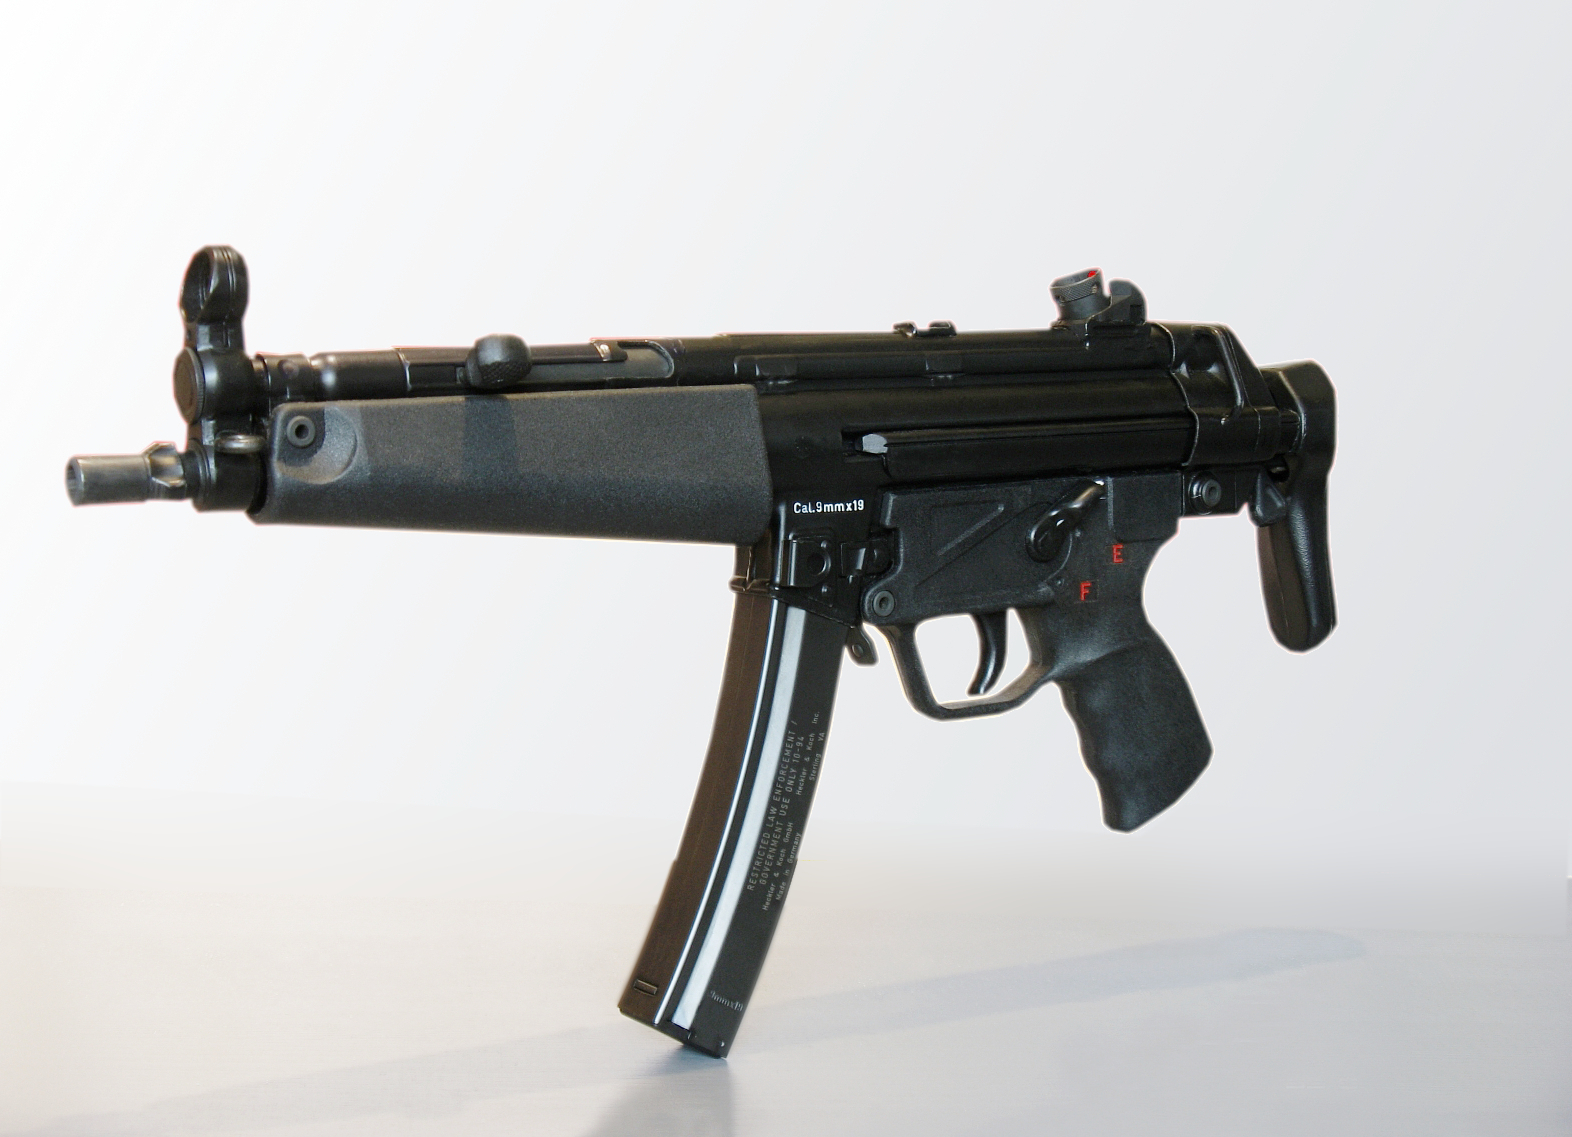 Hk mp5 wikipedia for Koch deutschland